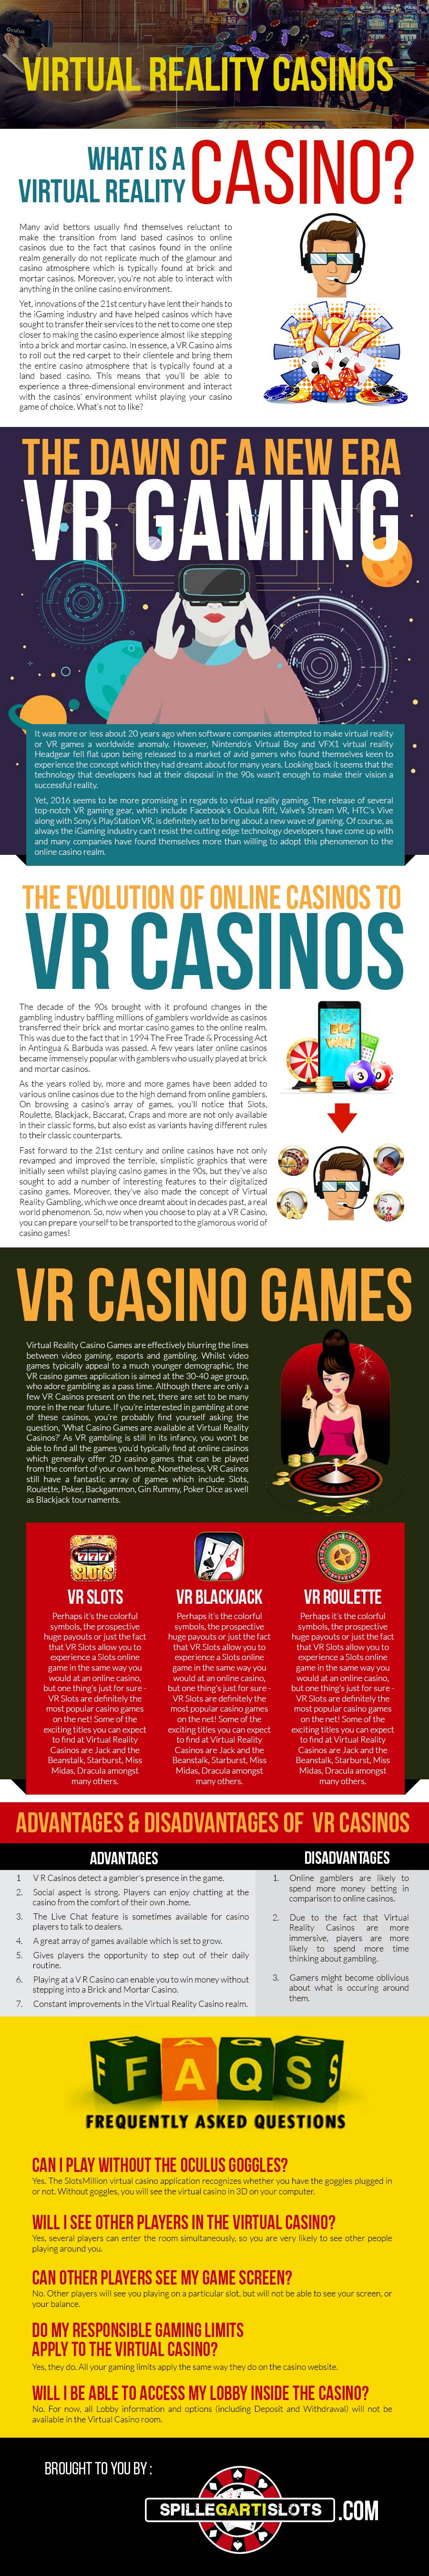 Virtual Reality Casino Online